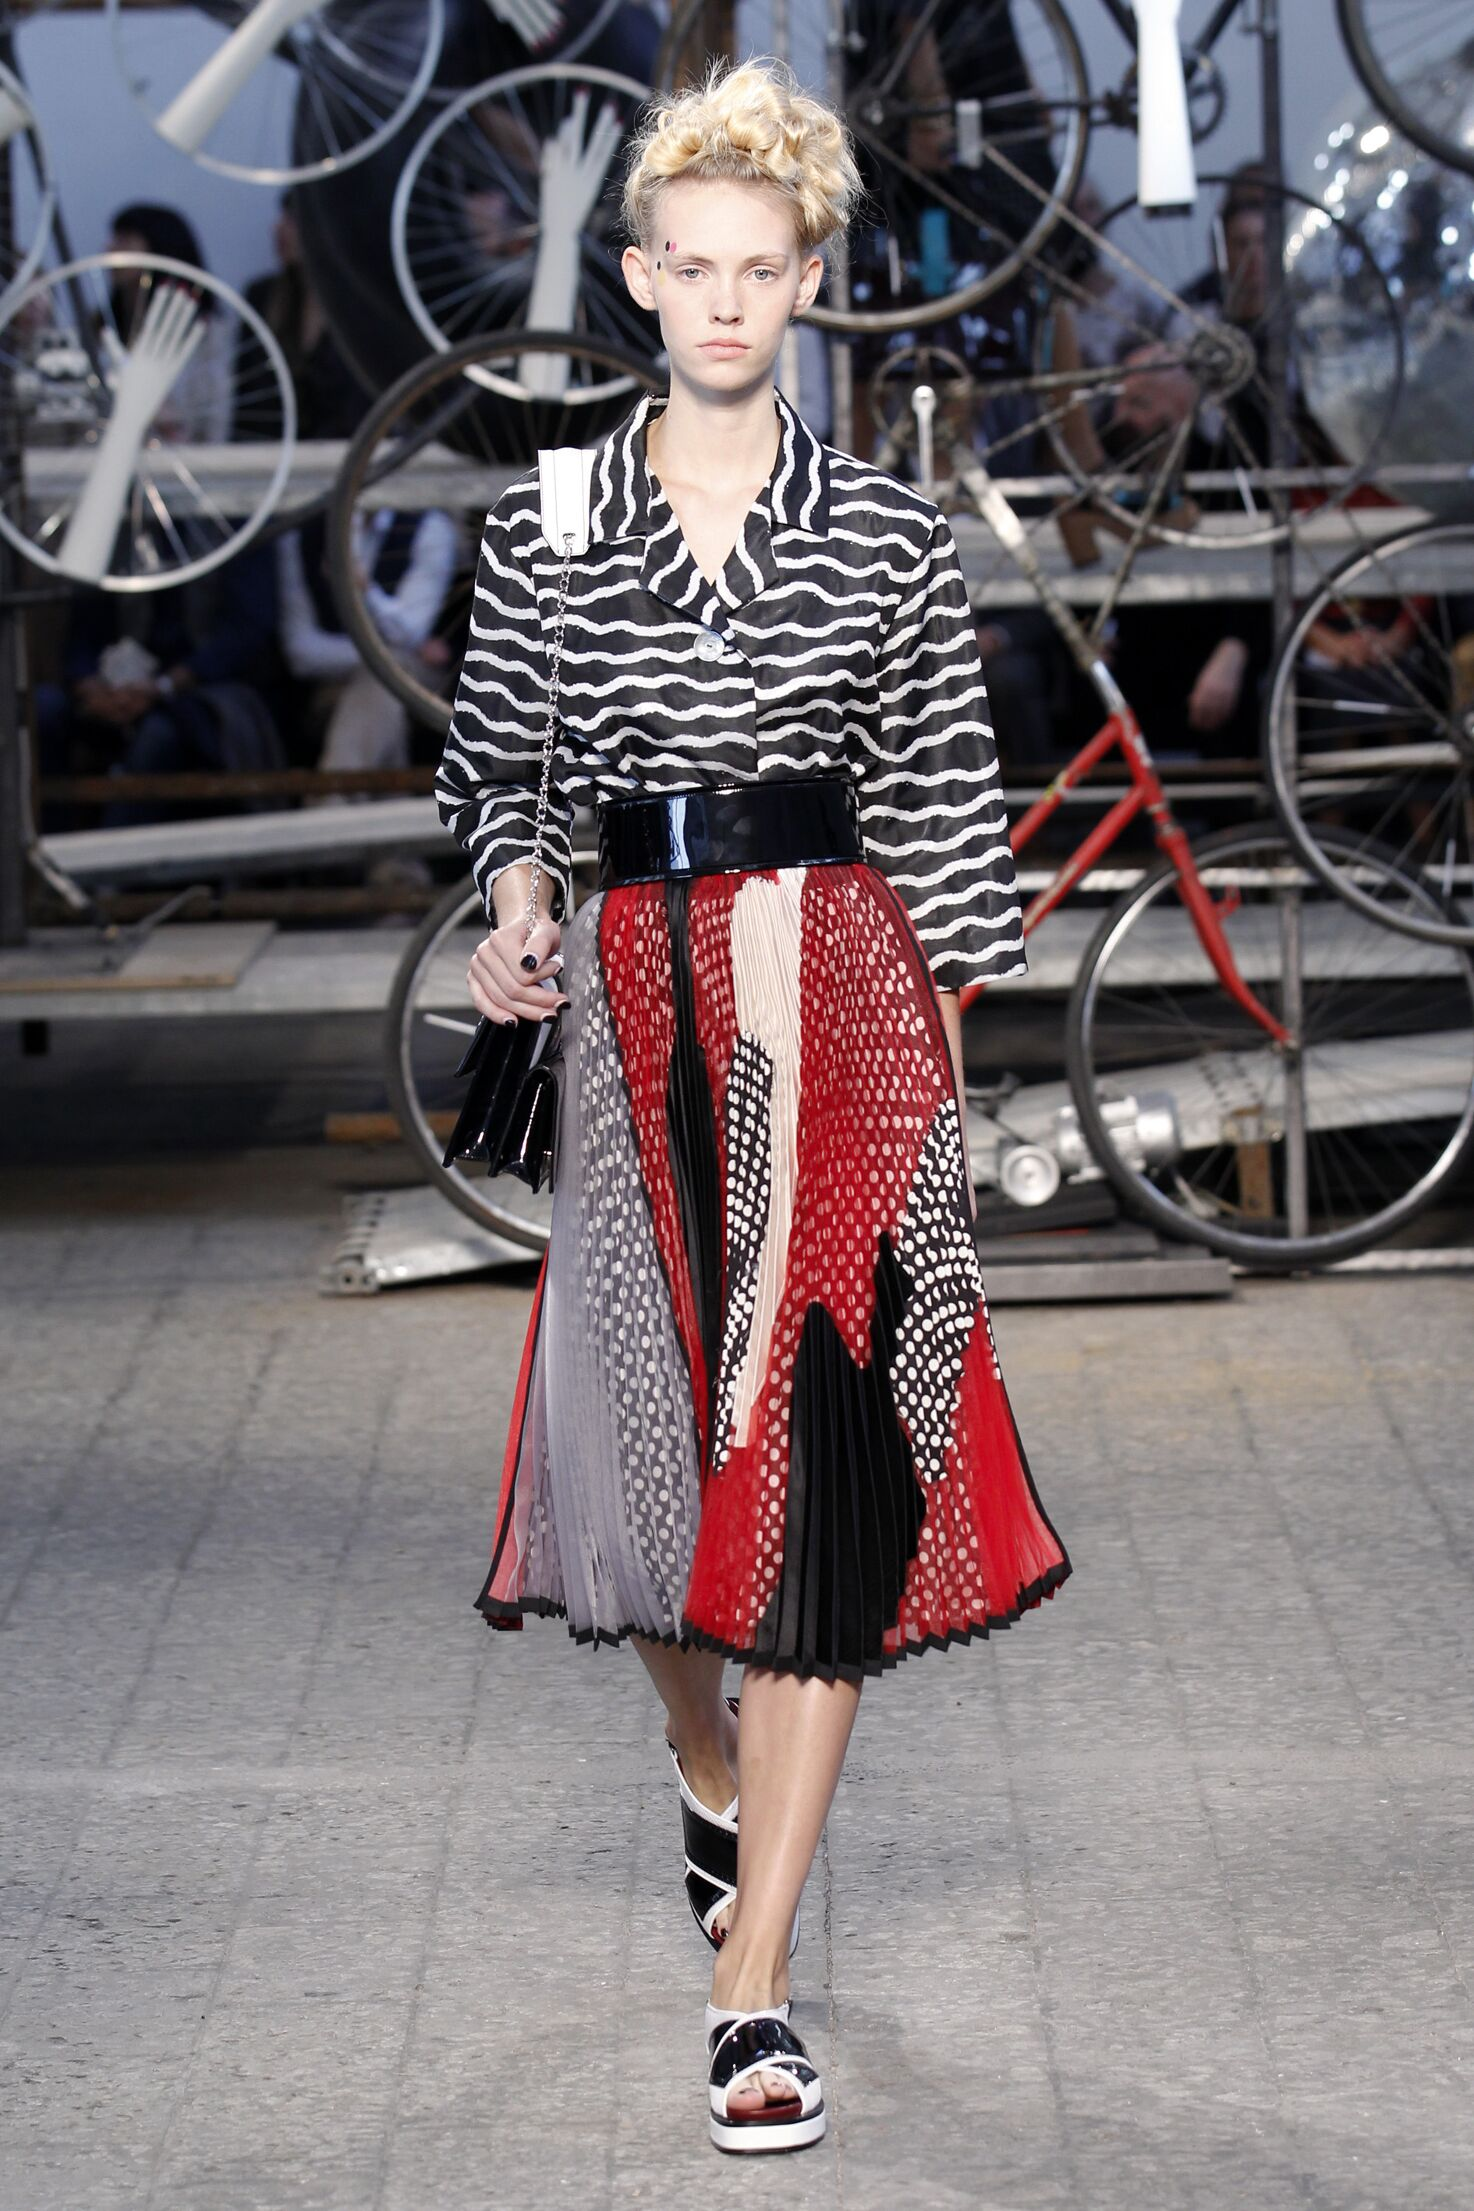 2015 Antonio Marras Summer Catwalk Womenswear